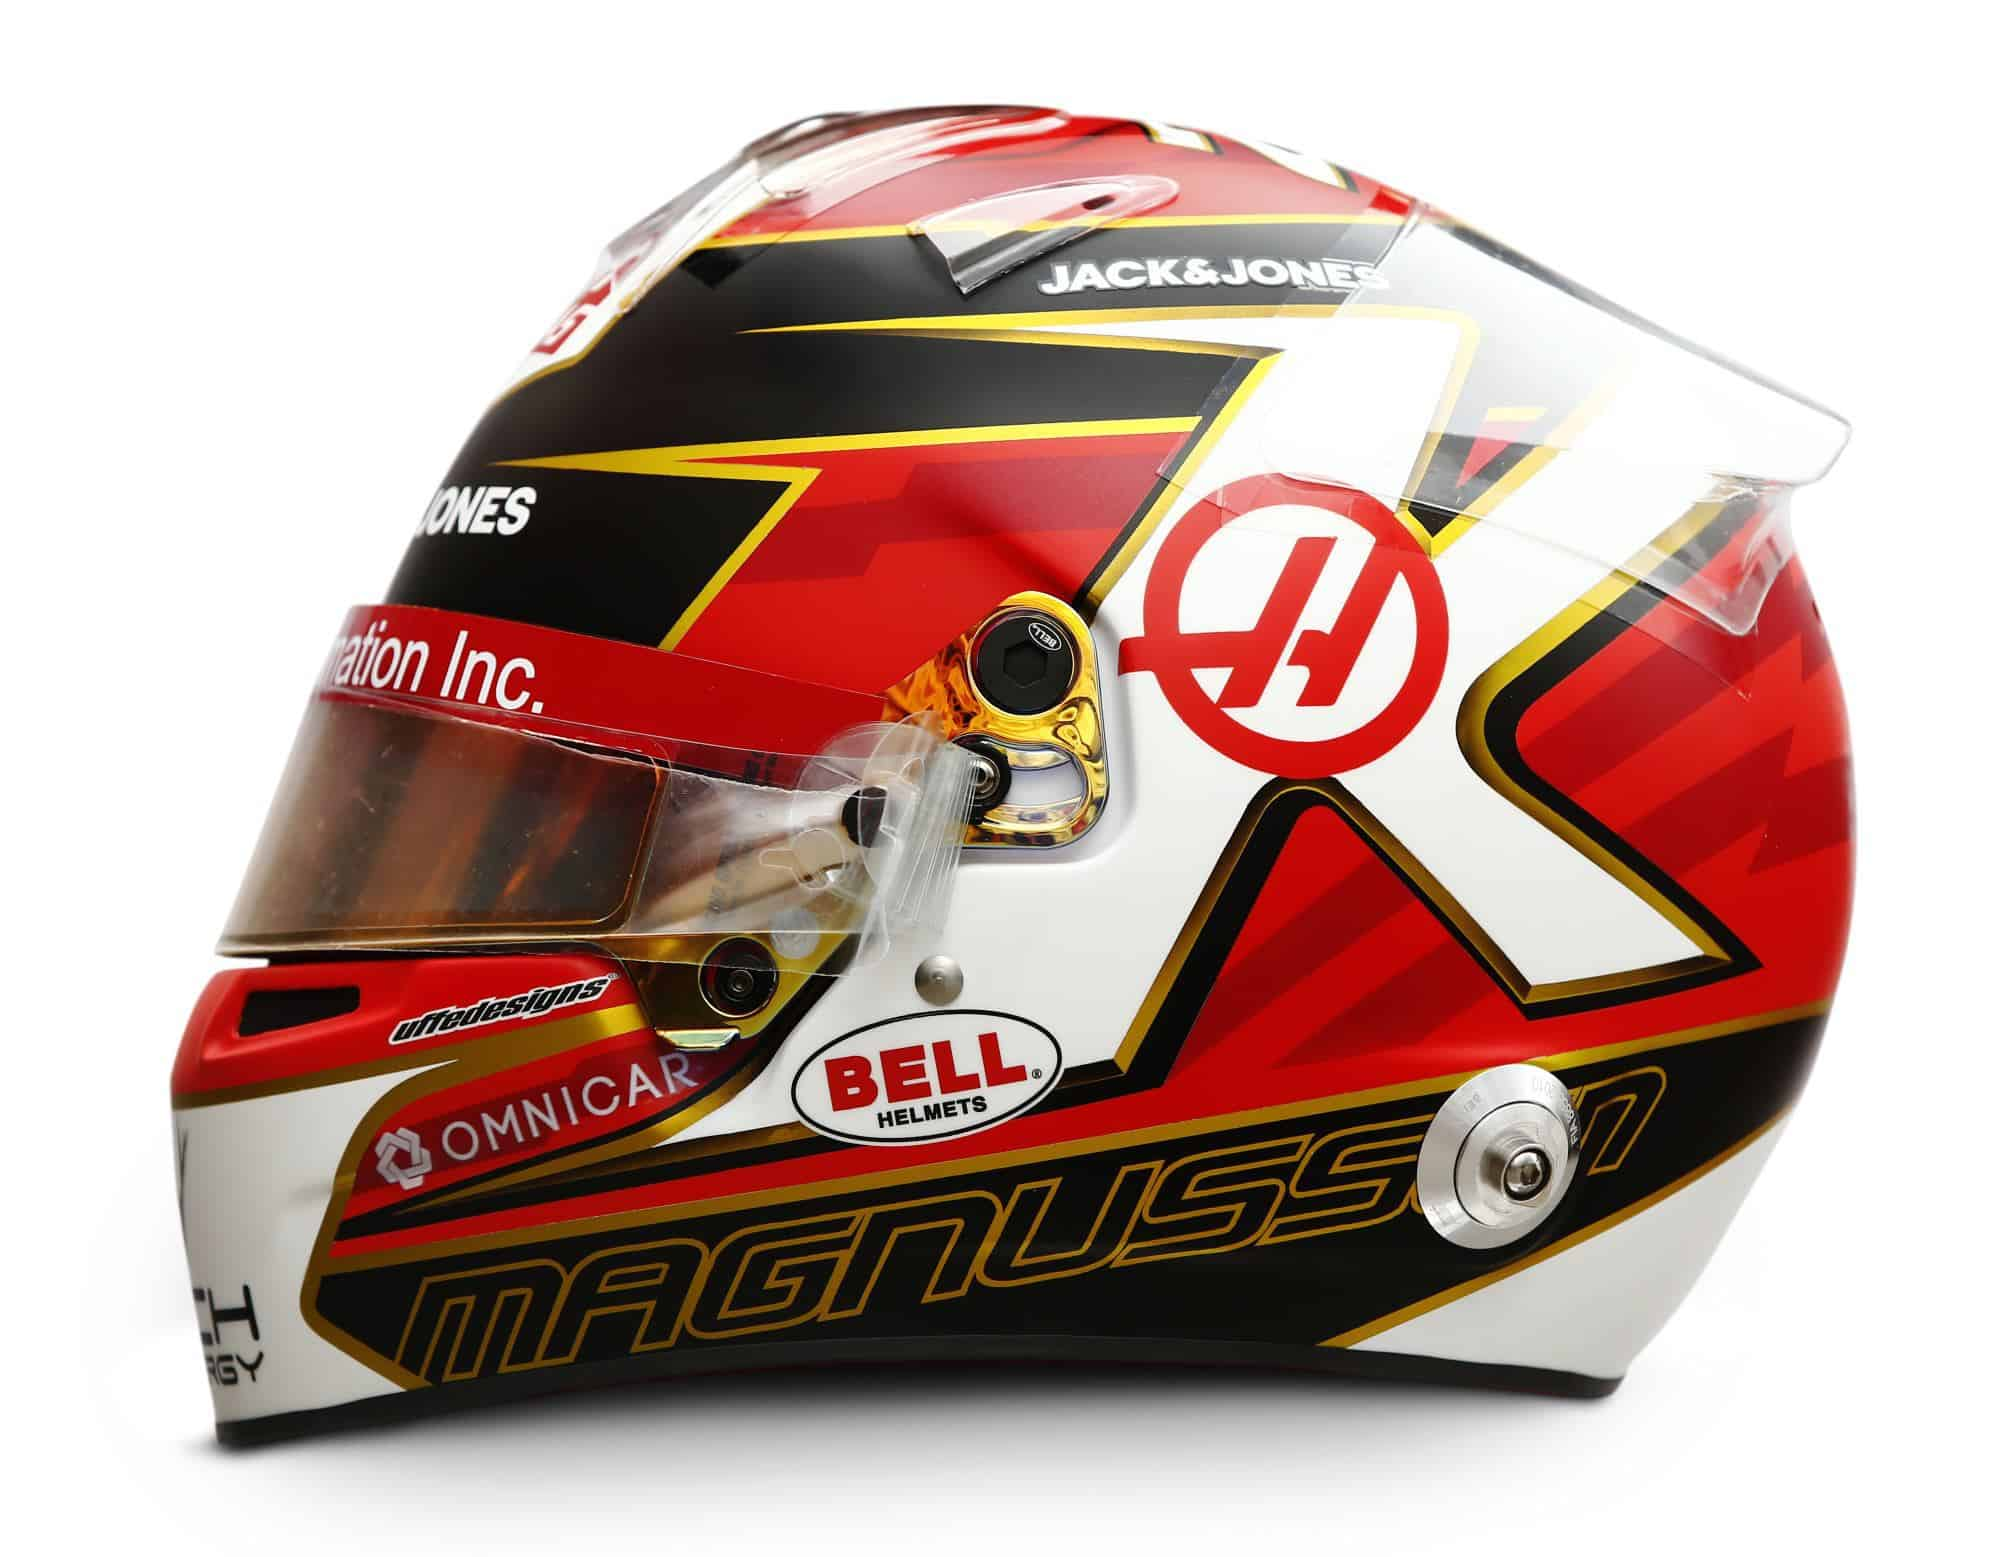 2019 Rich Energy Haas F1 Team Kevin Magnussen helmet left side Photo Haas Edited by MAXF1net